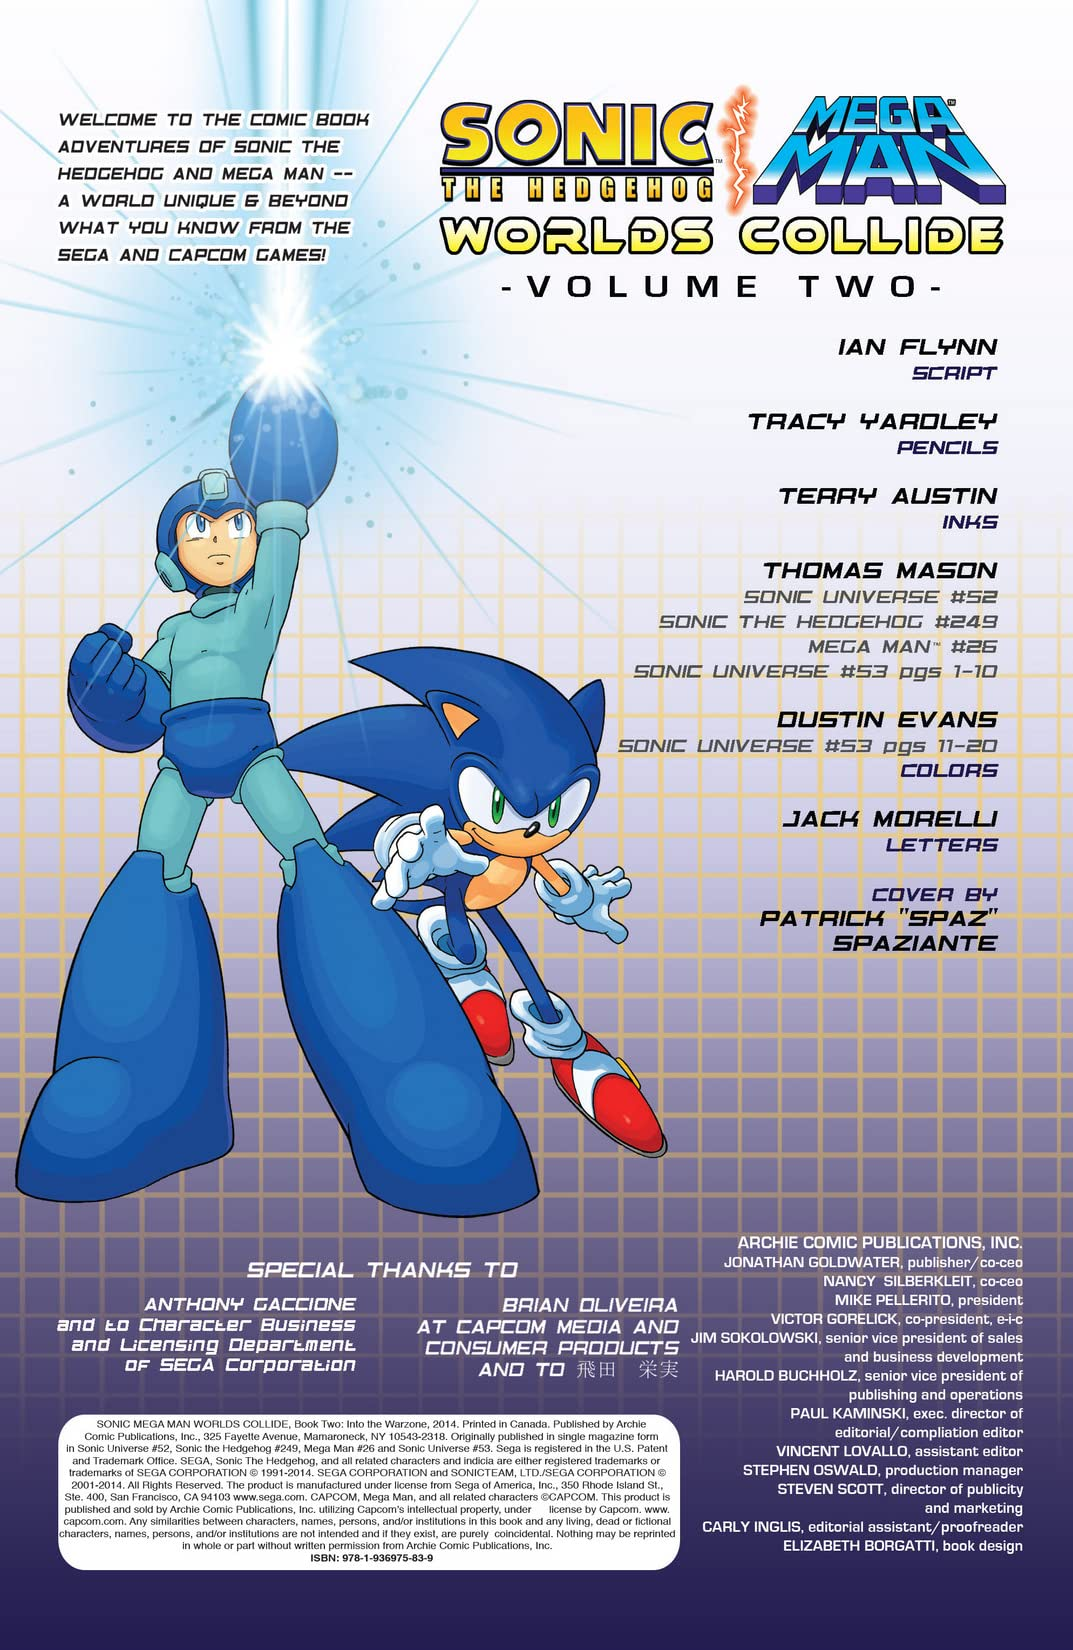 Sonic the Hedgehog/Mega Man: Worlds Collide Vol. 2